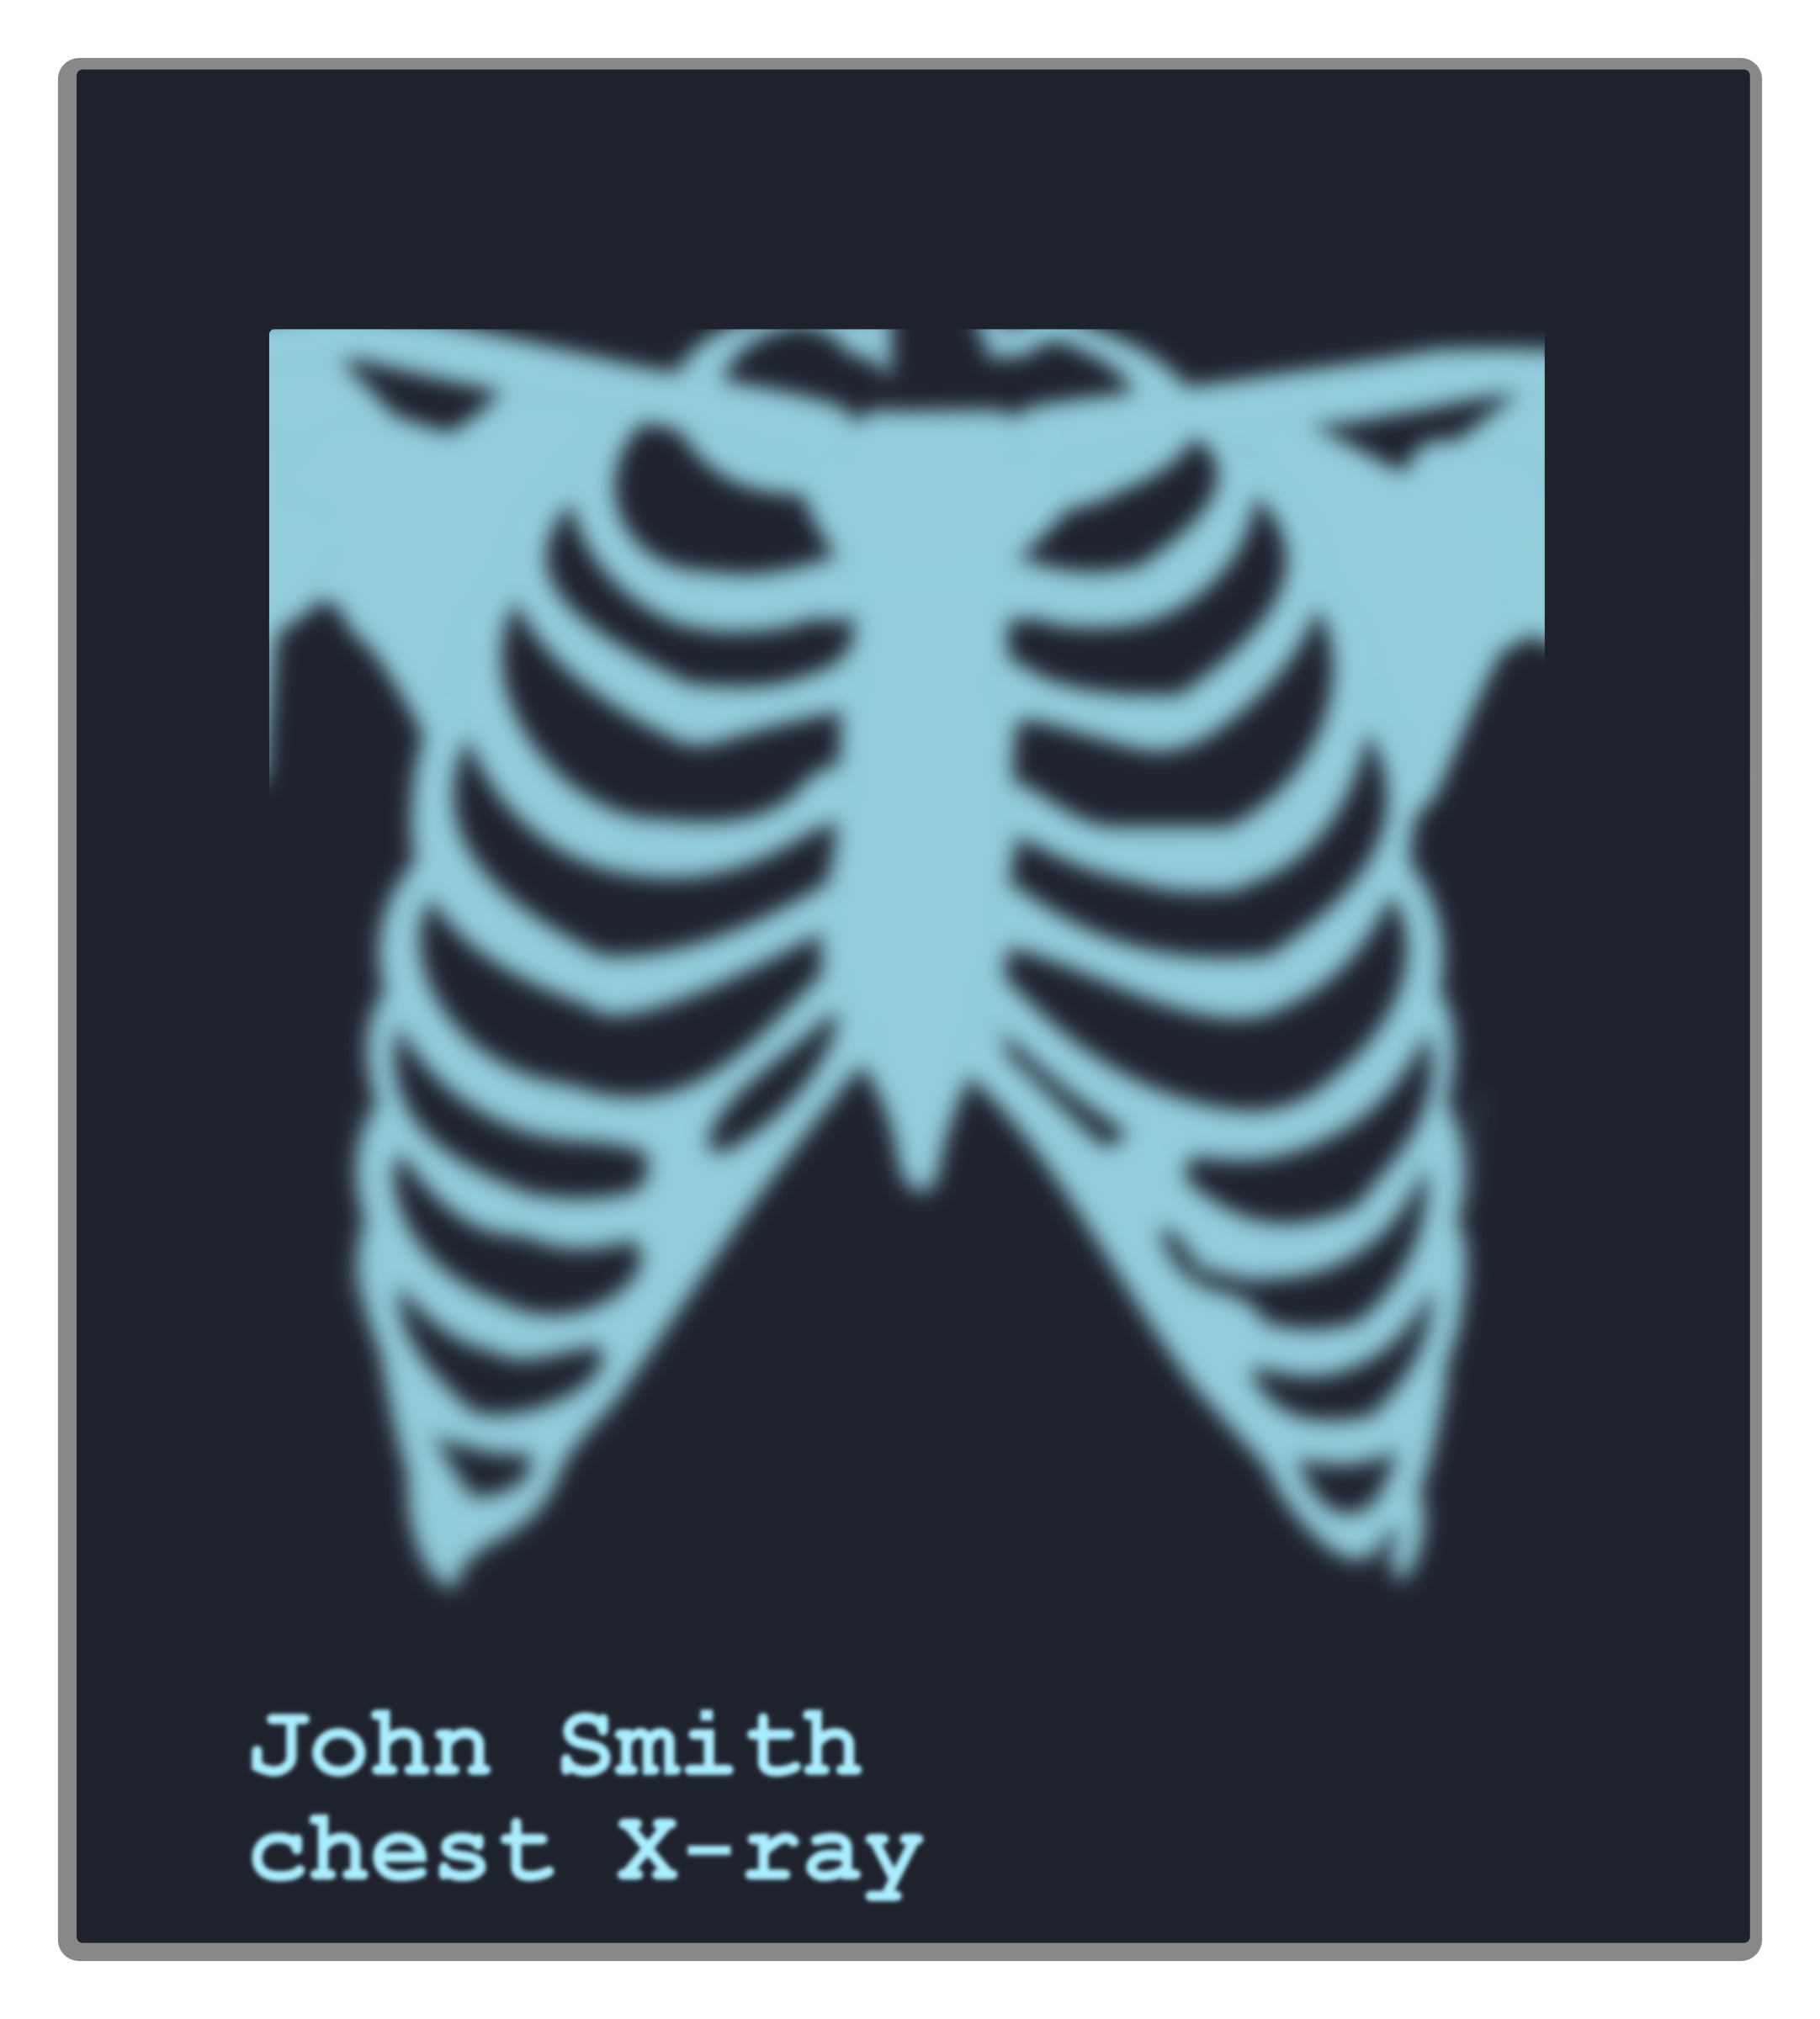 Chest X-ray image by Juhele